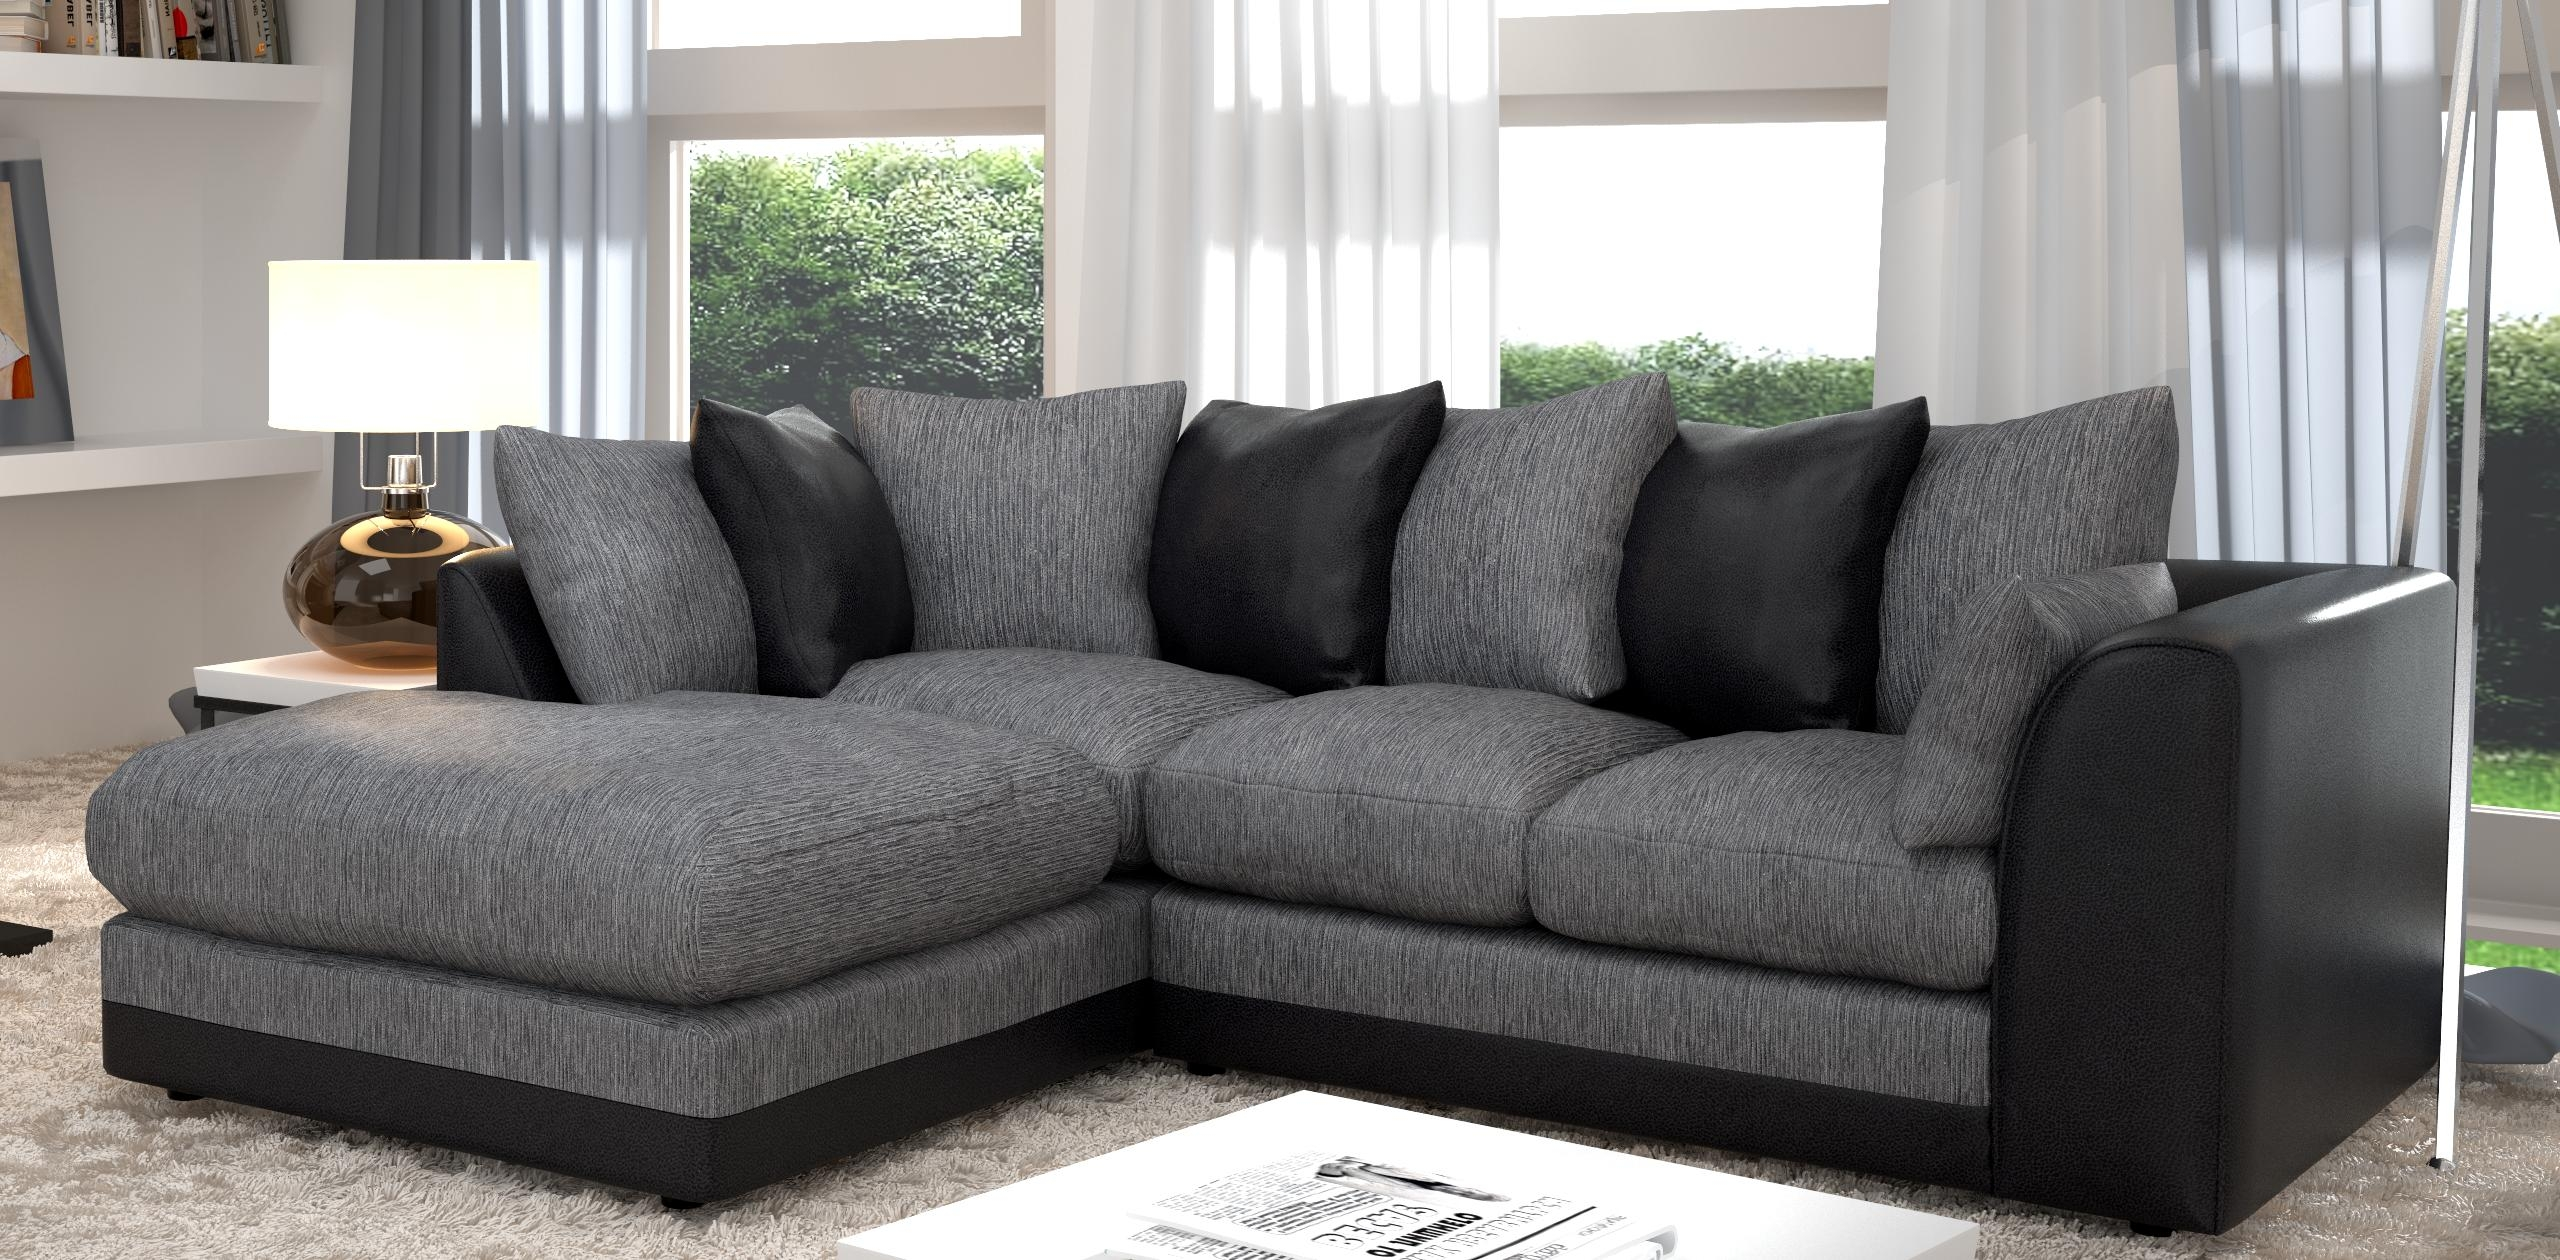 Grey Fabric Sofas Uk Grey Couch Wall Color (Image 12 of 20)